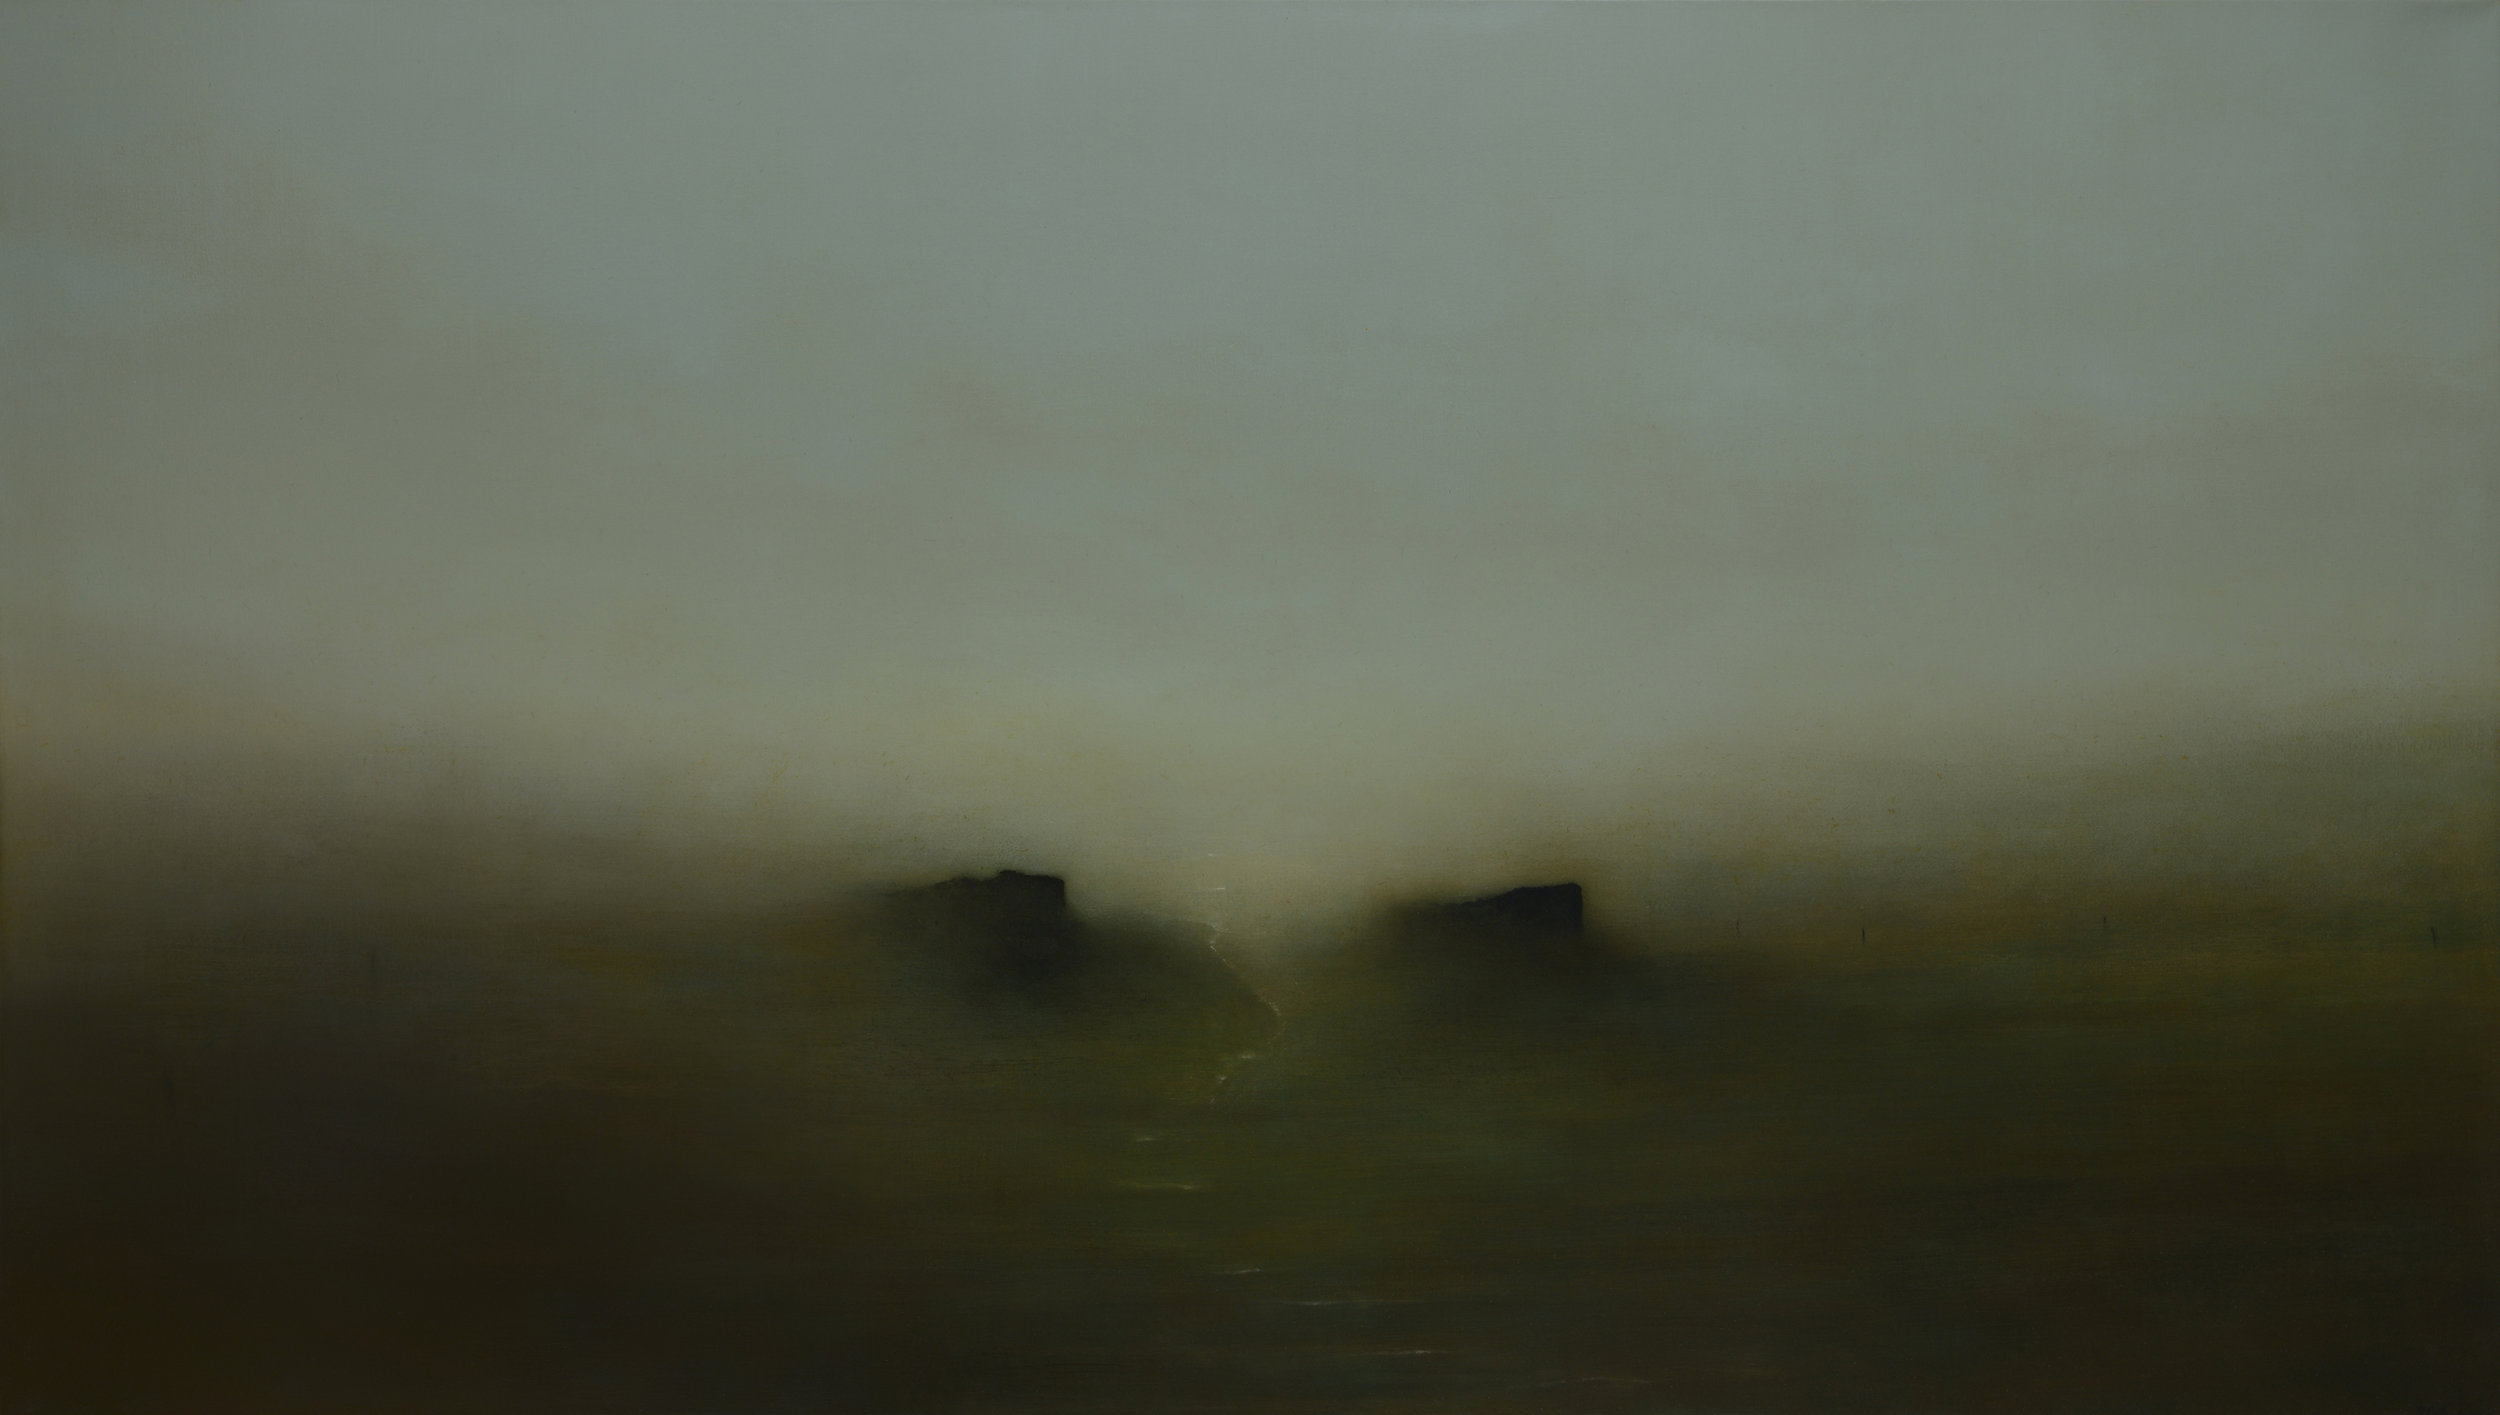 Forgotten Lands | 200cm x 115cm Oil on Canvas